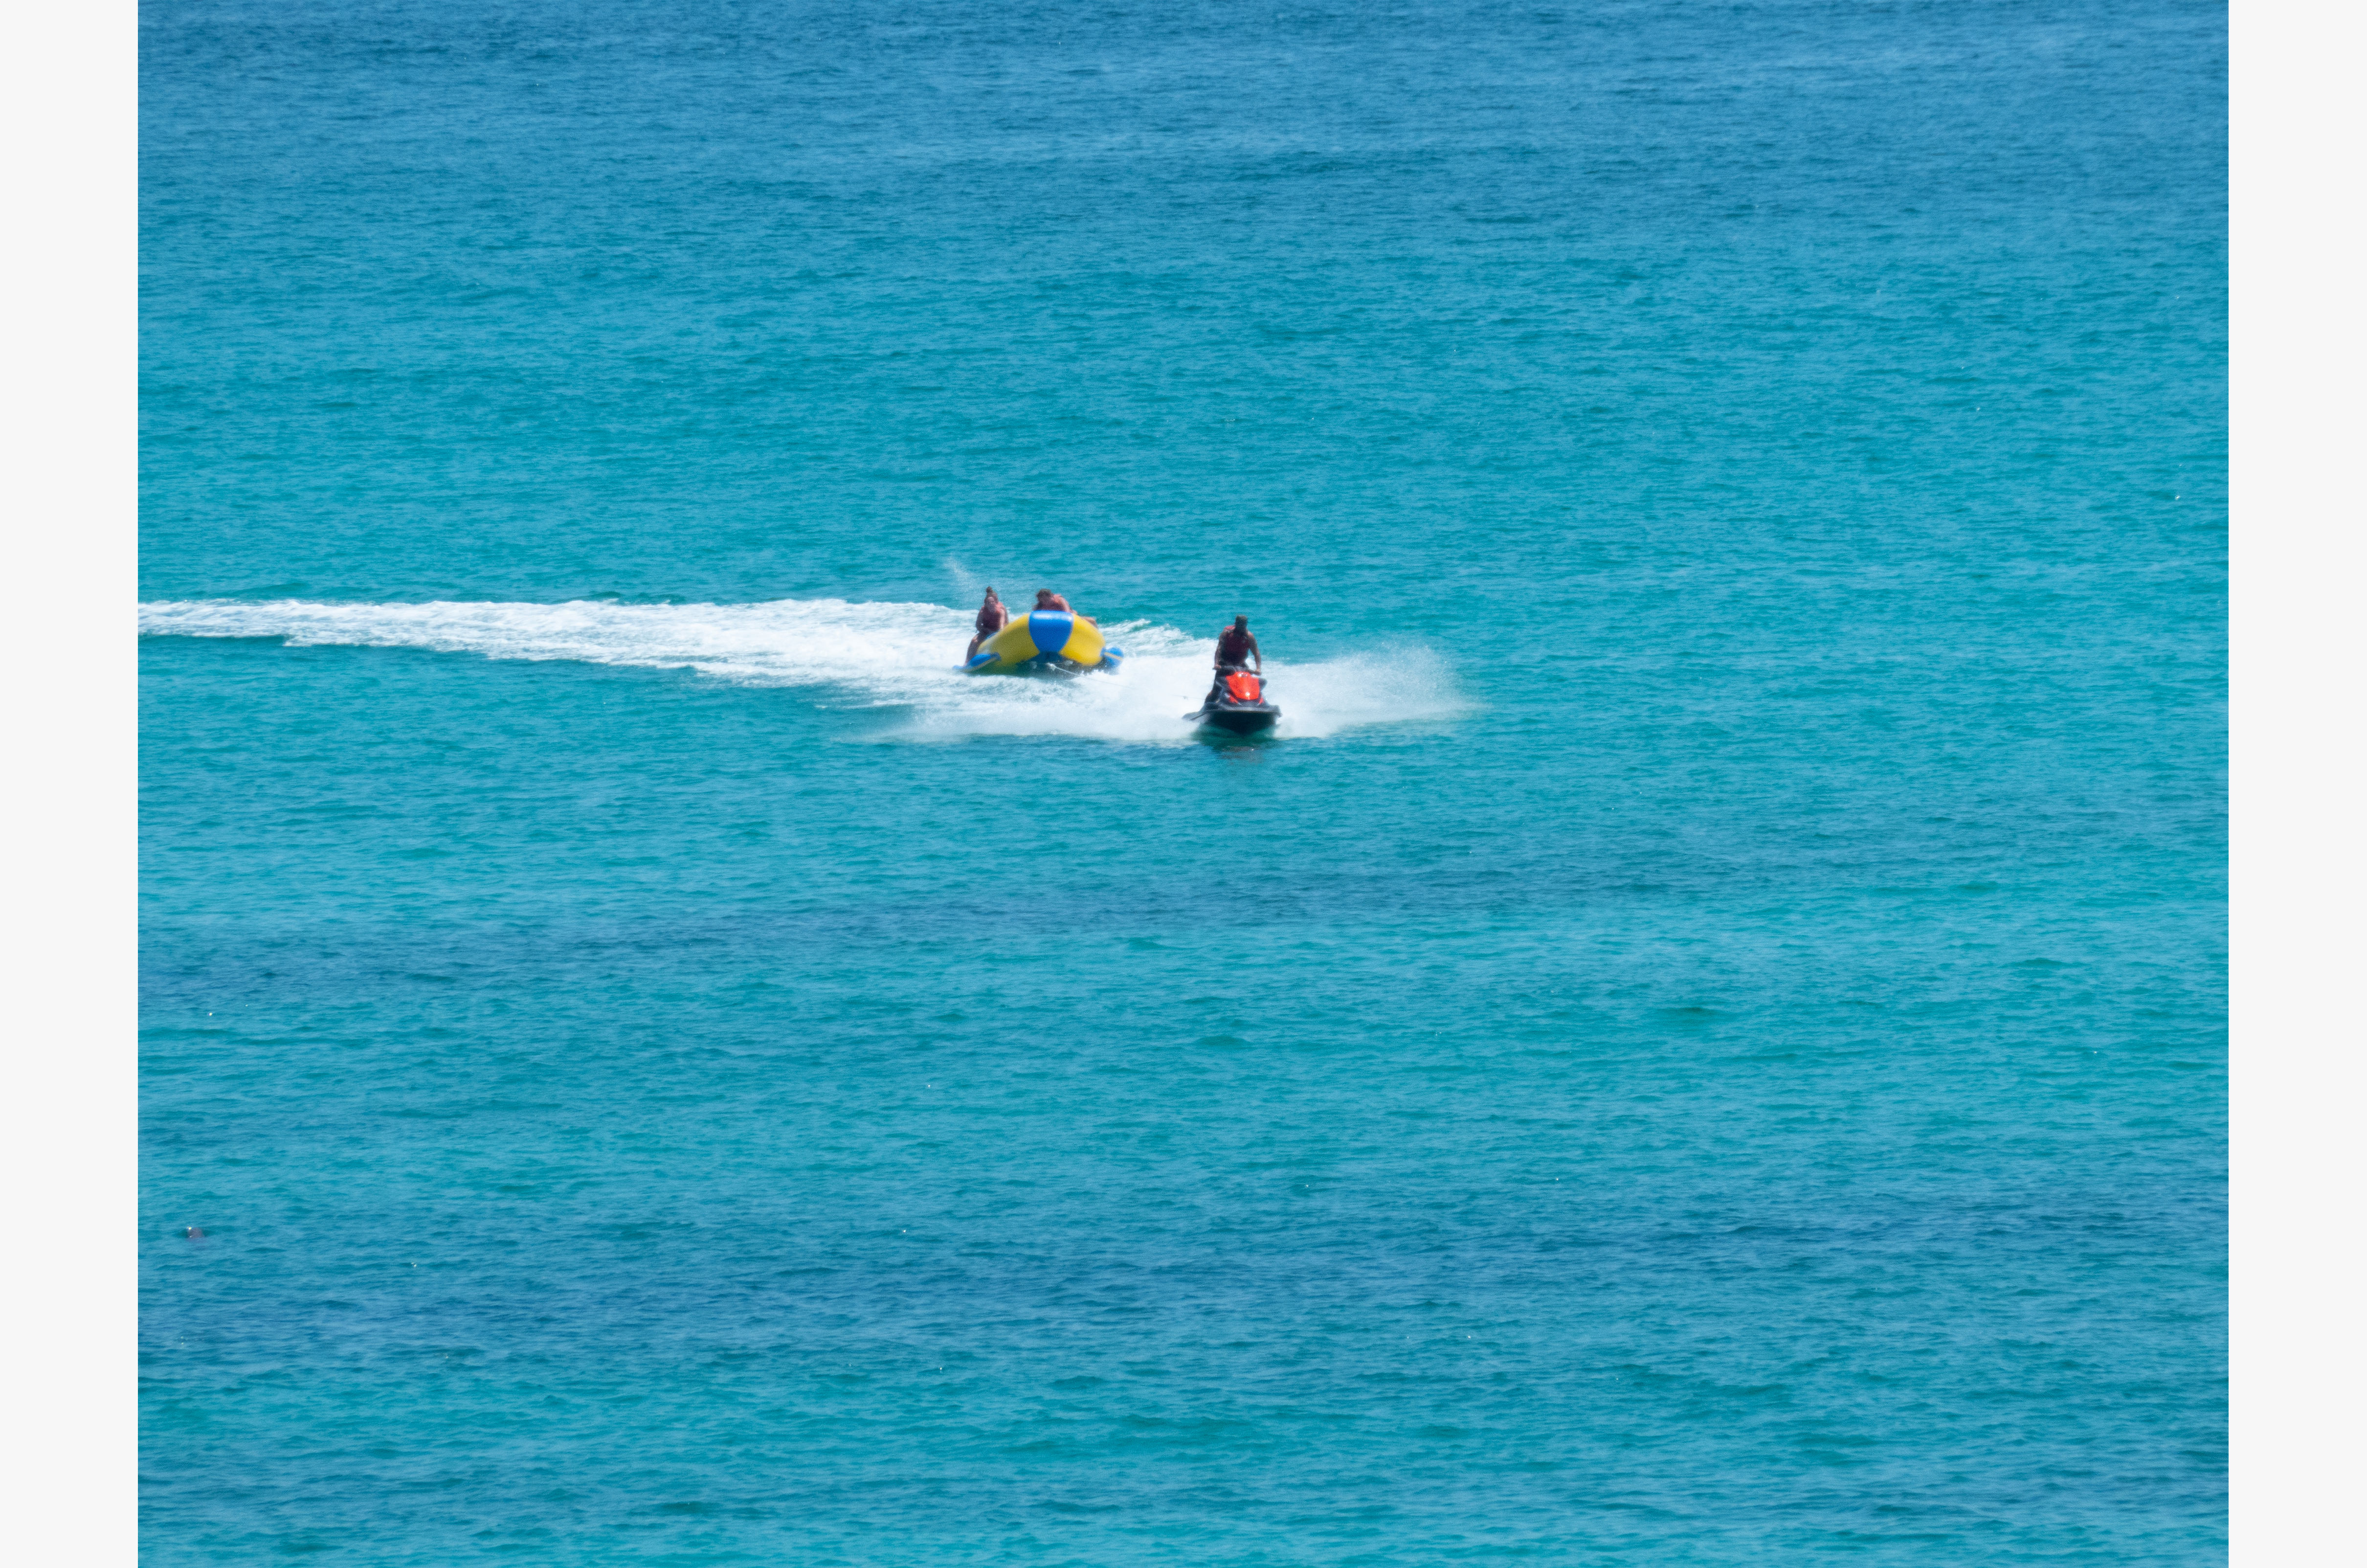 Rent a Jet Ski or take a banana boat ride.  Check with the beach kiosk for schedules and pricing.  They also have beach chairs and umbrellas for rent by the day or by the week.